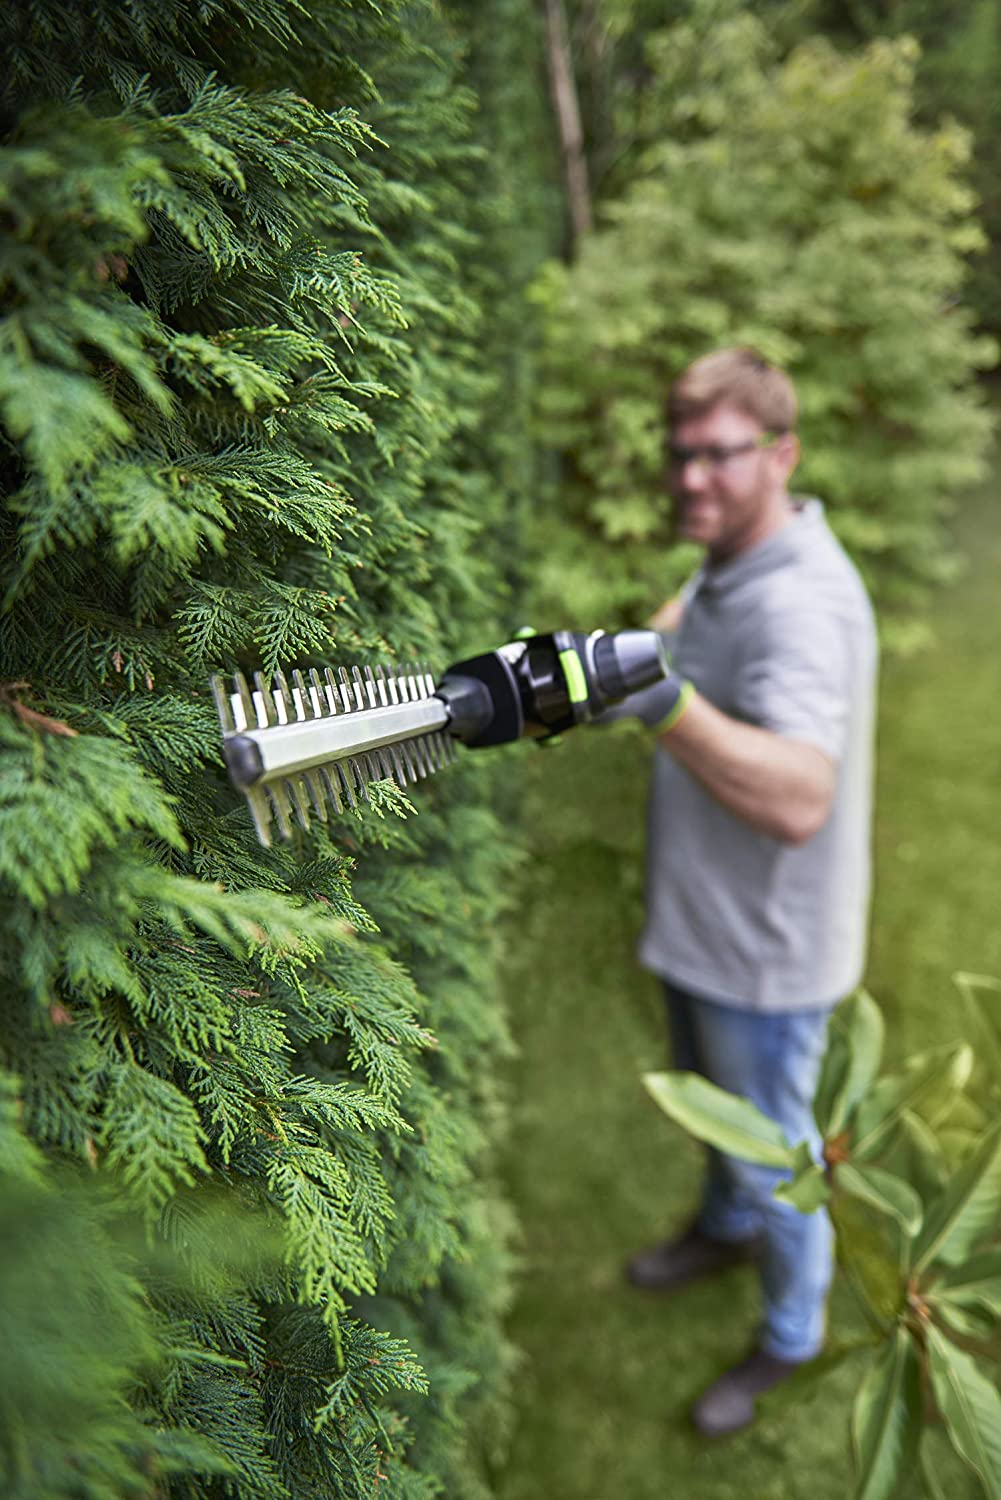 Gtech Cordless Hedge Trimmer 3.0 Review